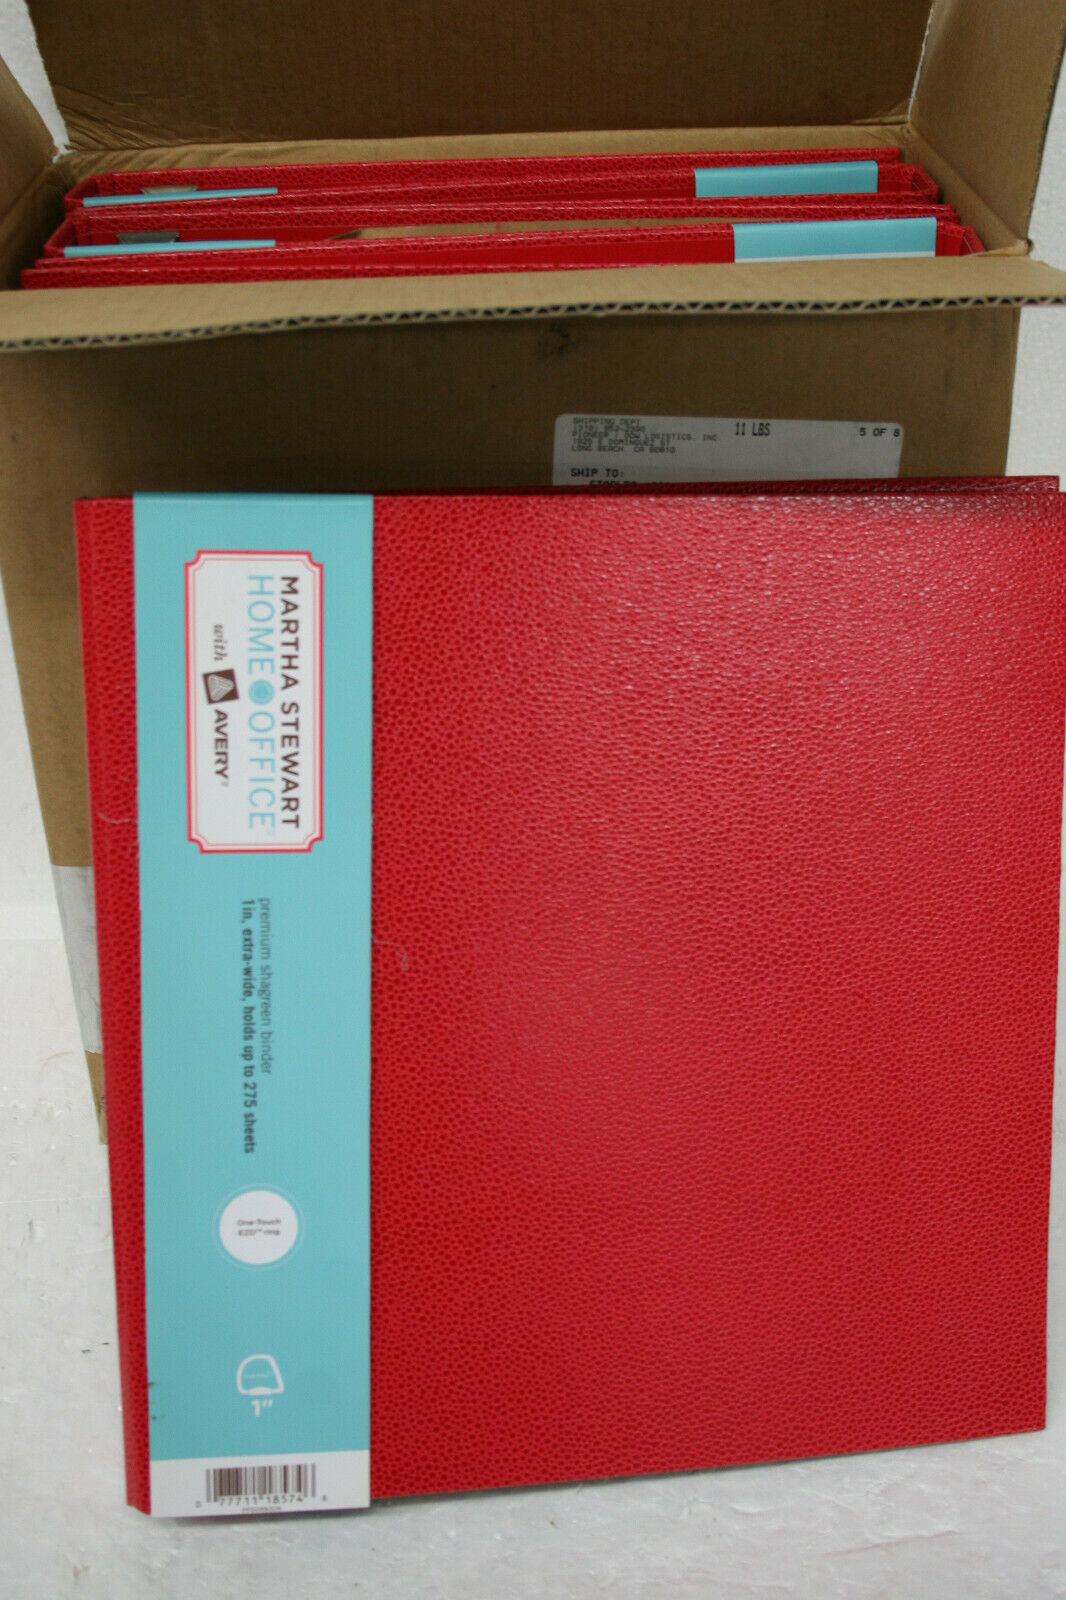 Martha Stewart 18574 1  XWIDE Premium Shagreen binders red 6 count